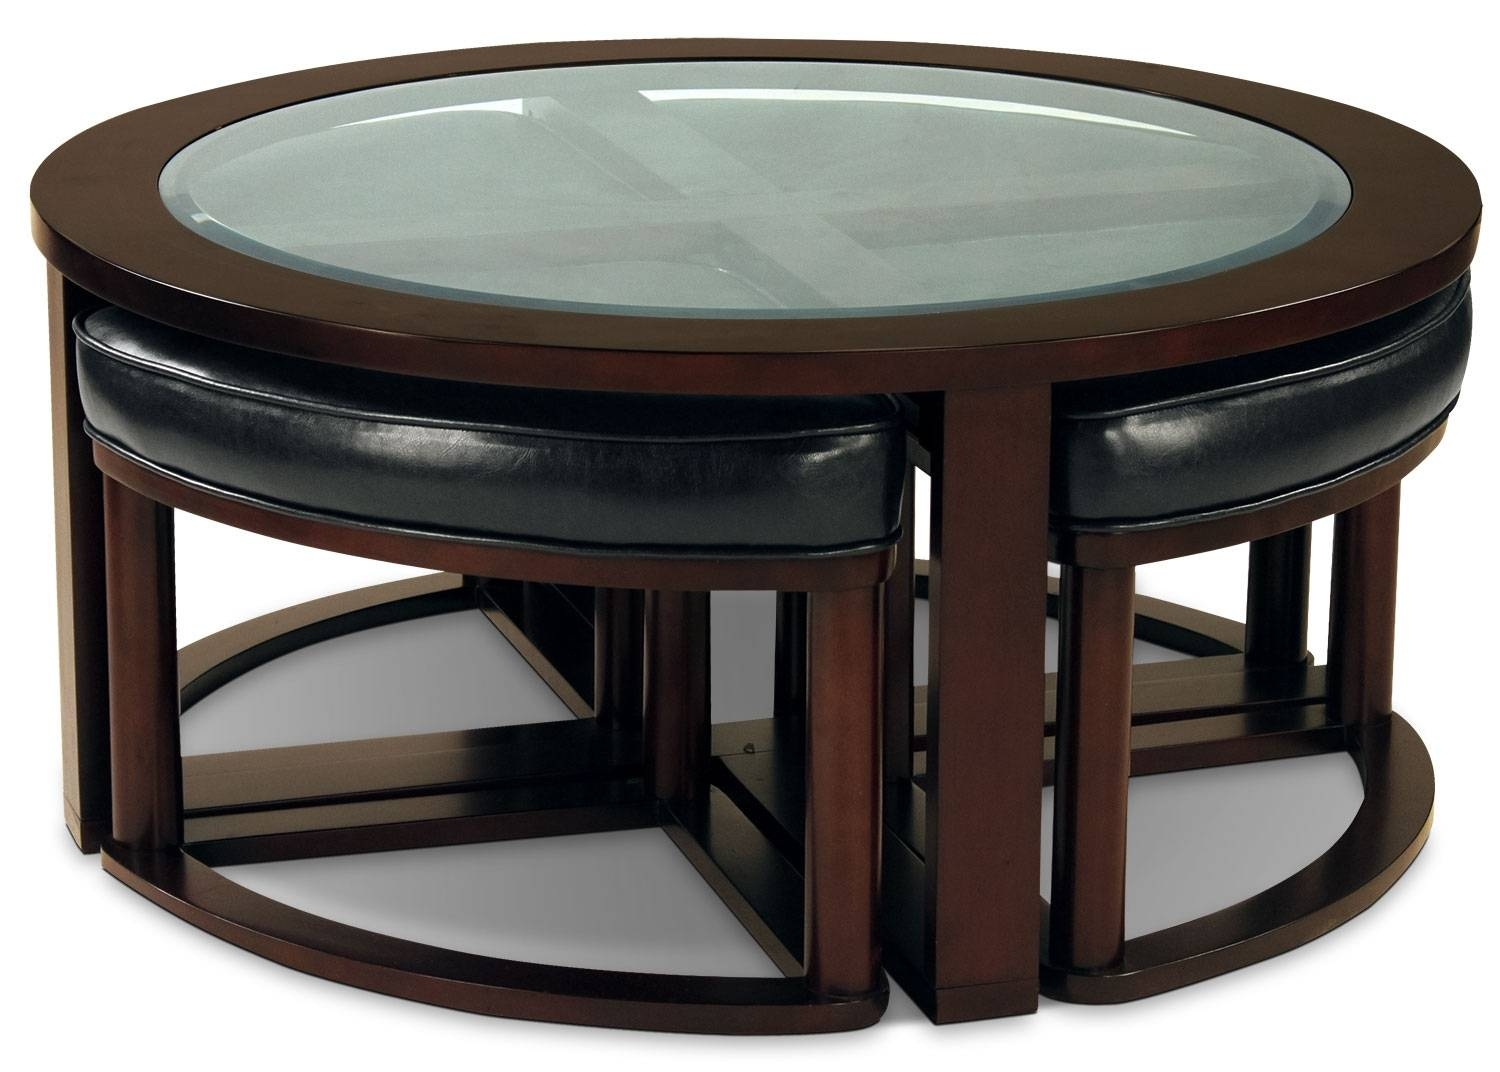 Sierra Coffee Table With Four Ottoman Wedge Stools | The Brick In Coffee Table With Stools (View 28 of 30)